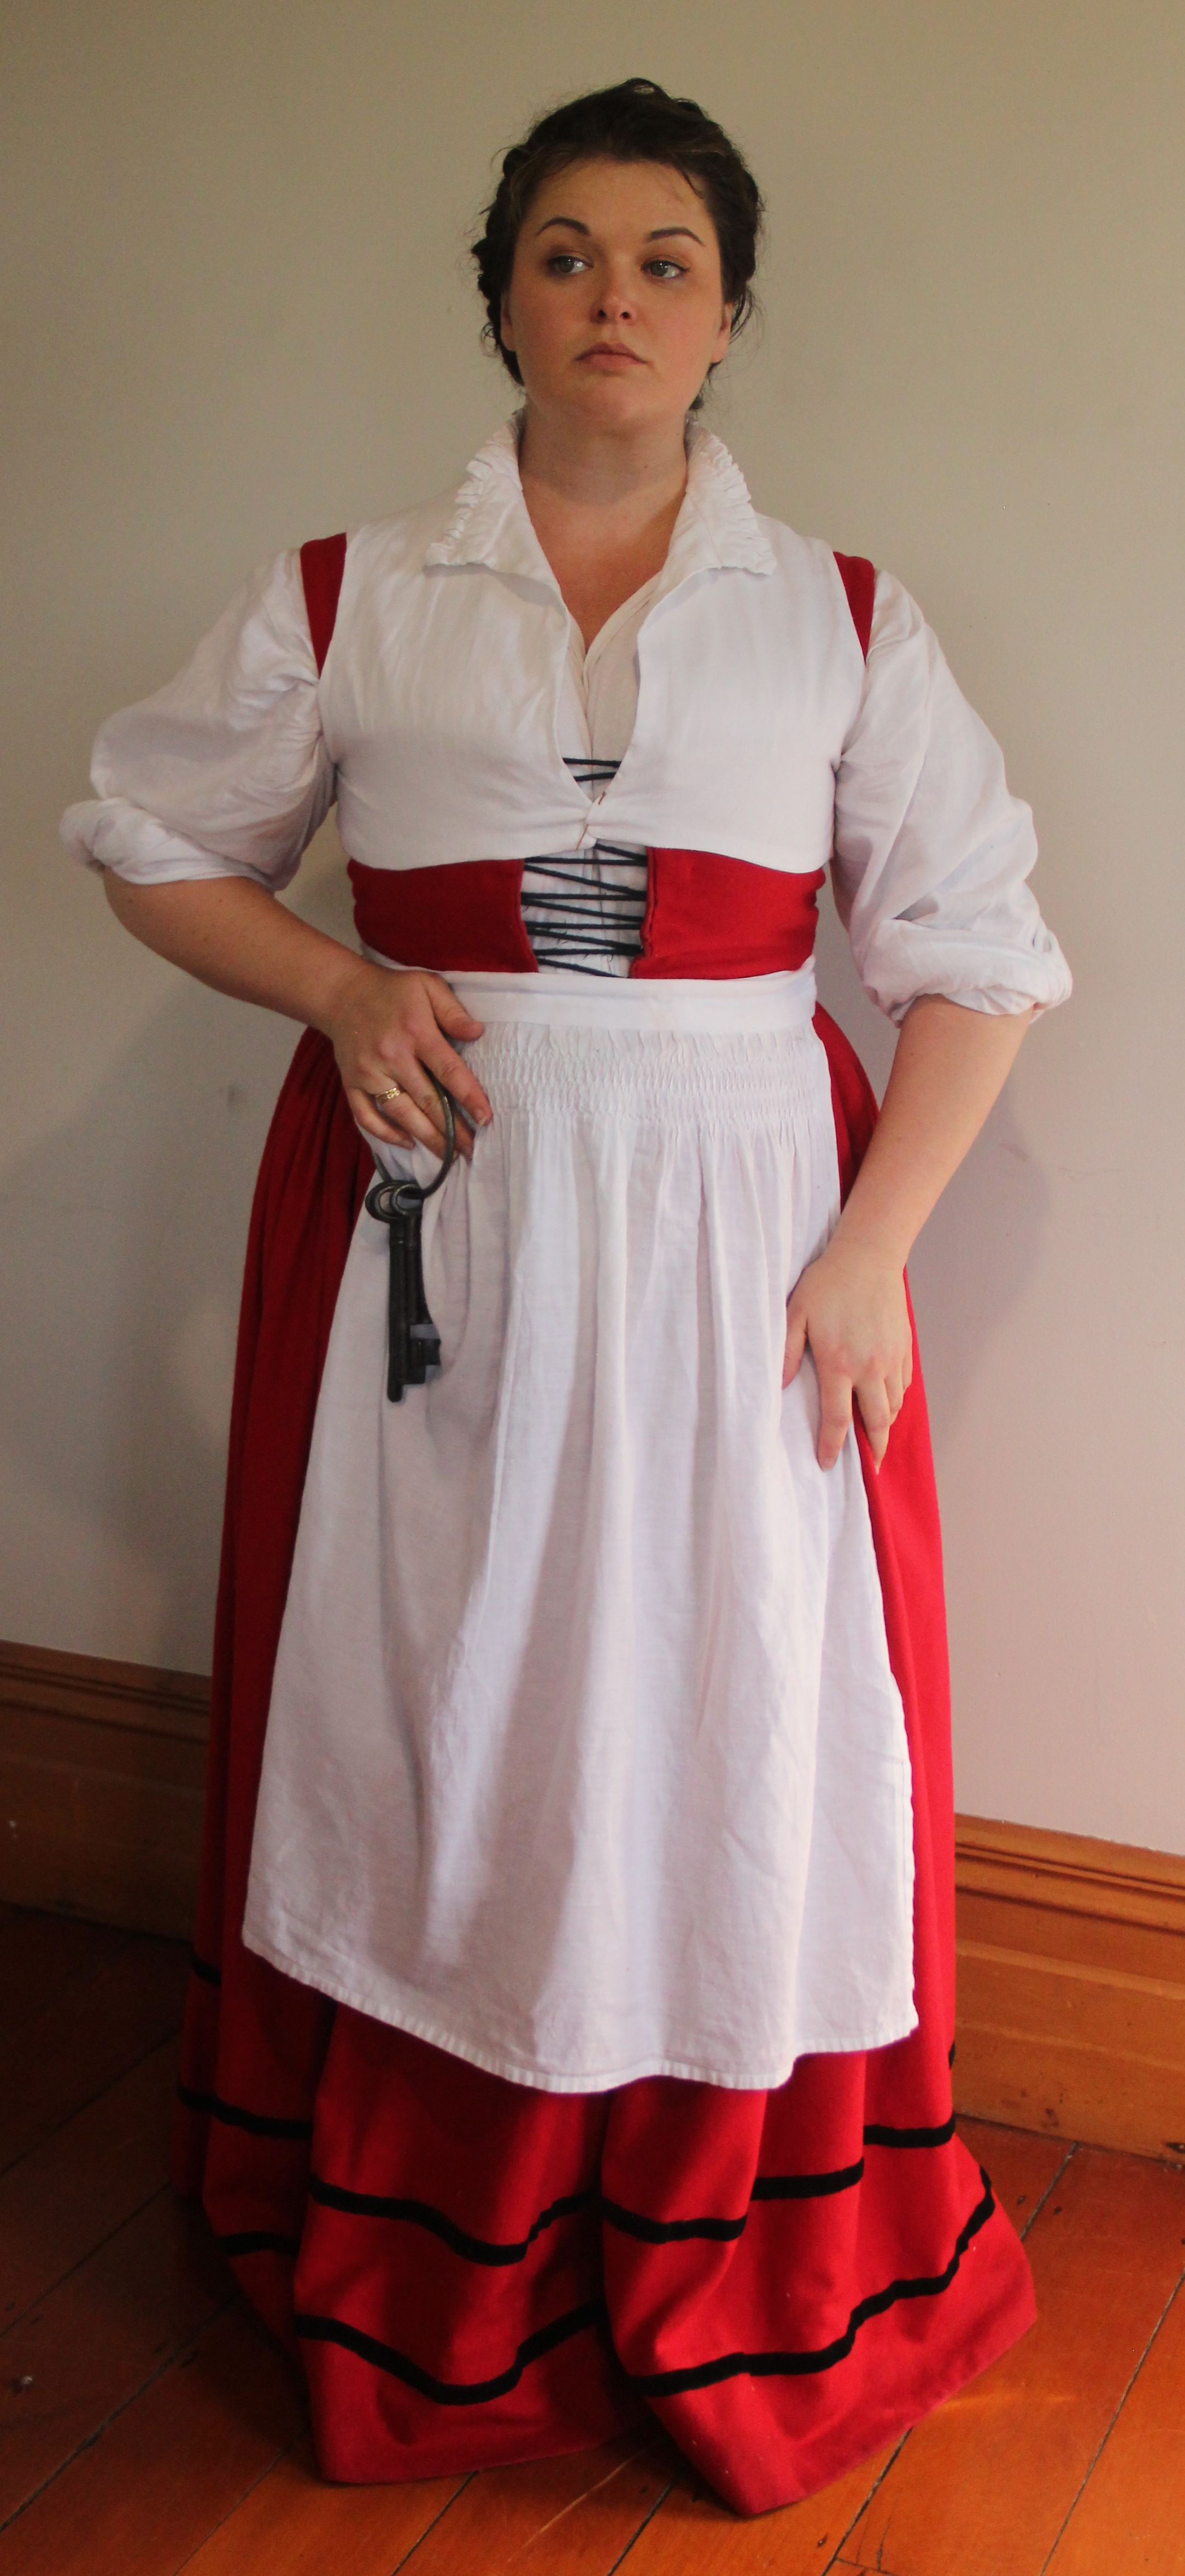 White tudor apron - 2008 Generic Tudor English Dress Middle Picture Has A Parlet With A Ruff Over The Dress